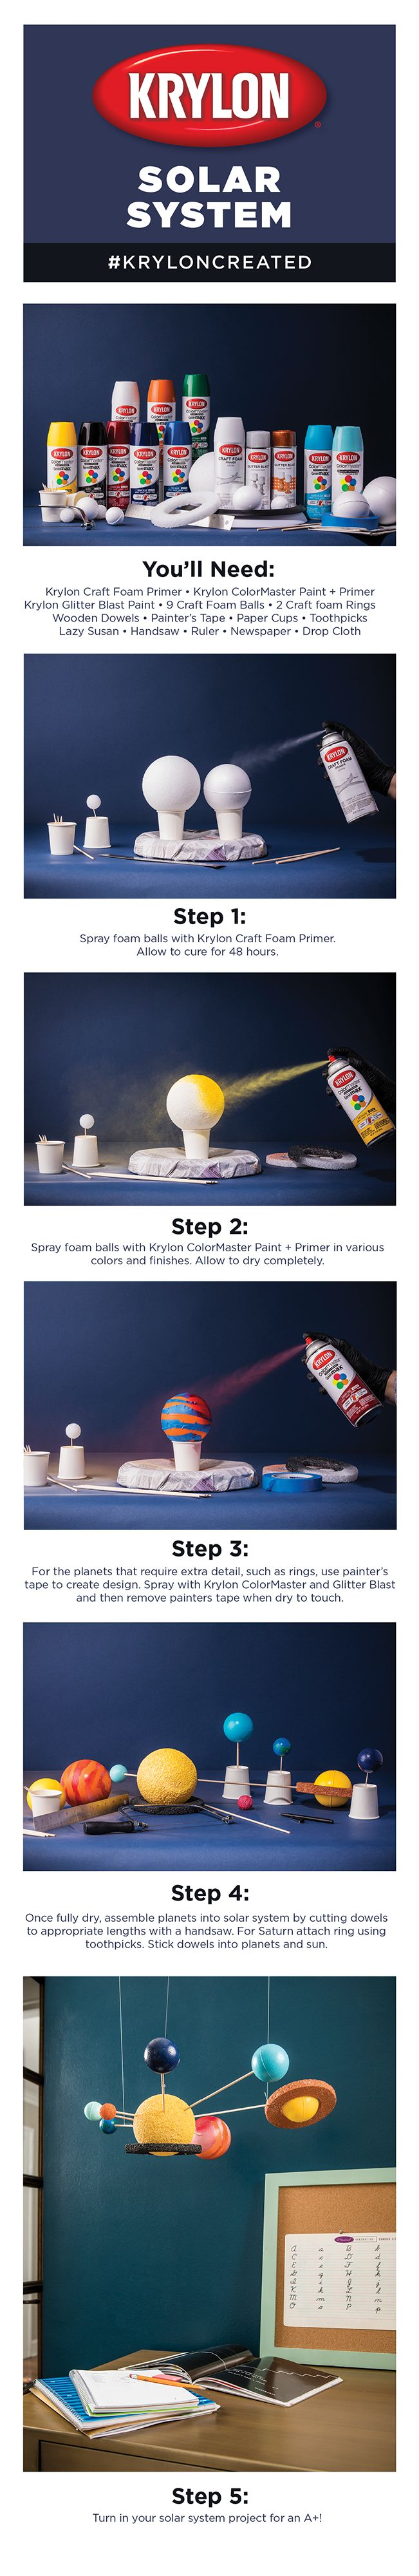 Painting miniatures color master primer -  Science Project By Spray Painting A Craft Foam Solar System With Krylon Using Krylon Craft Foam Primer And A Variety Of Krylon Colormaster And Glitter